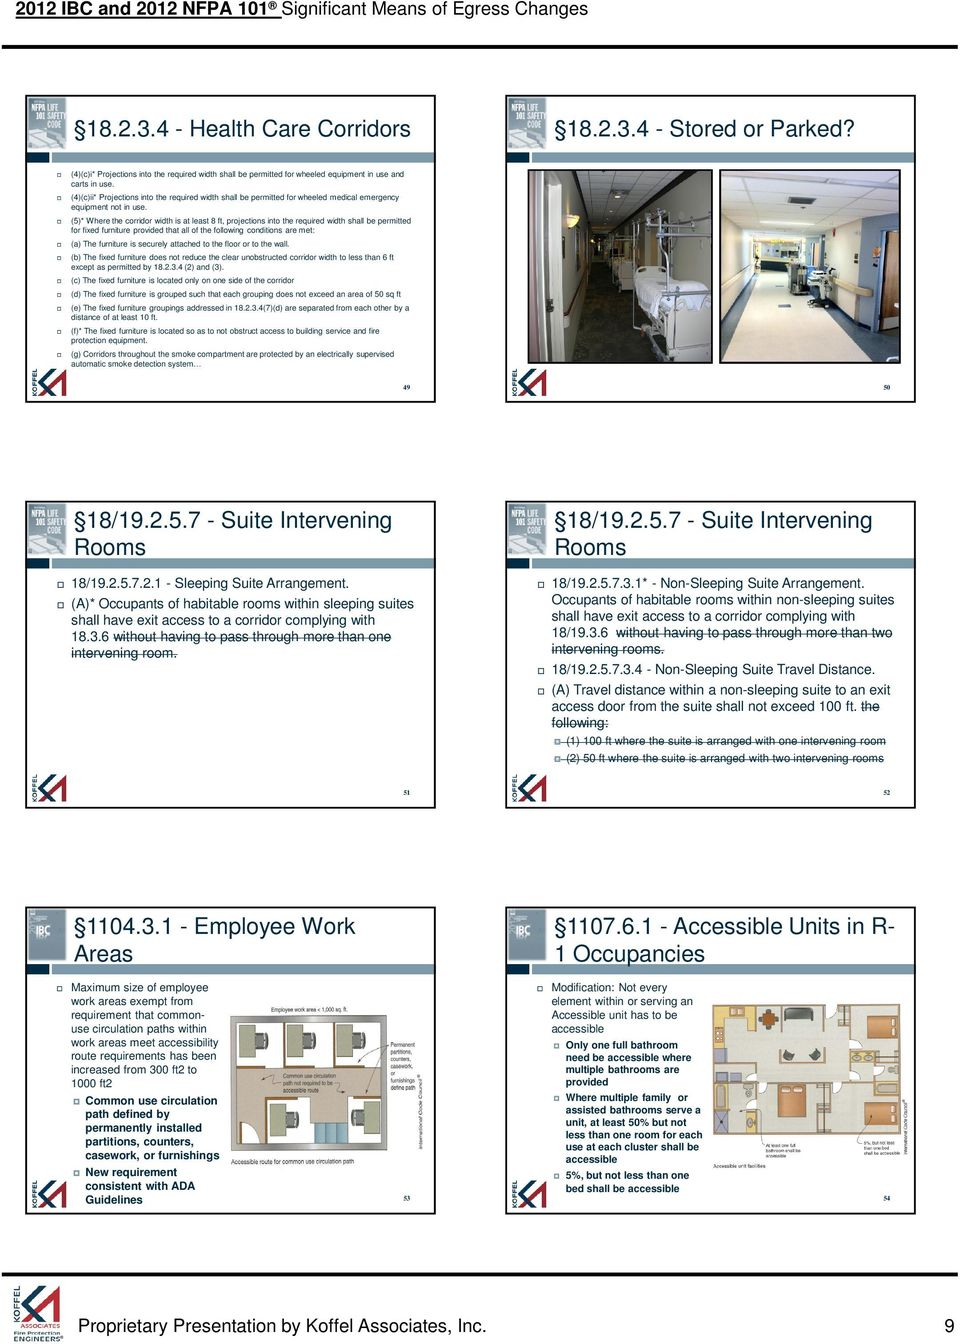 2012 IBC & 2012 NFPA 101 Significant Means of Egress Changes